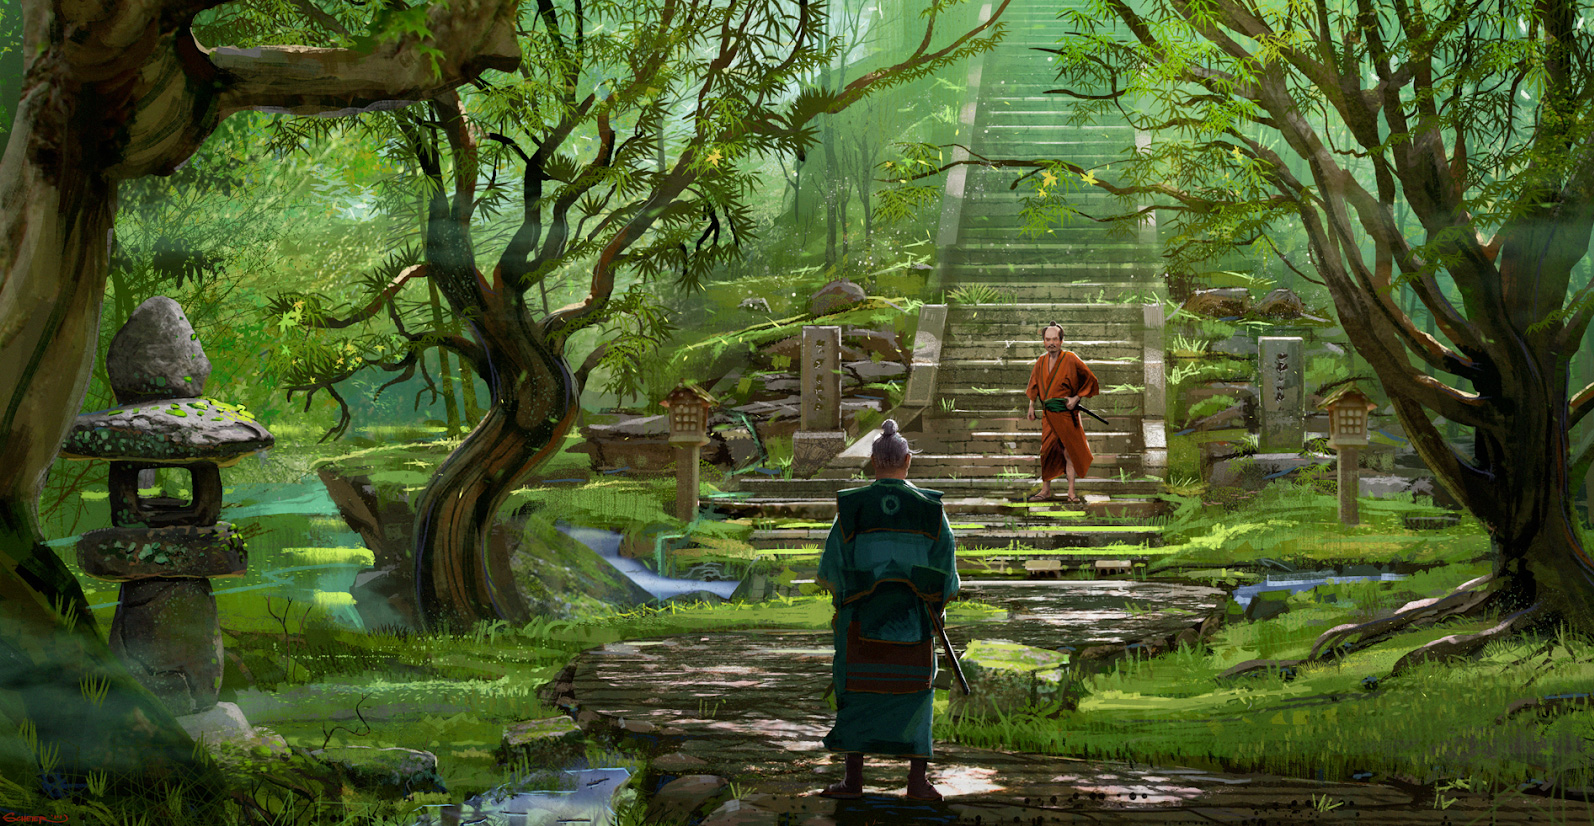 Samurai Concept Art Illustration 01 Jason Scheier Concept